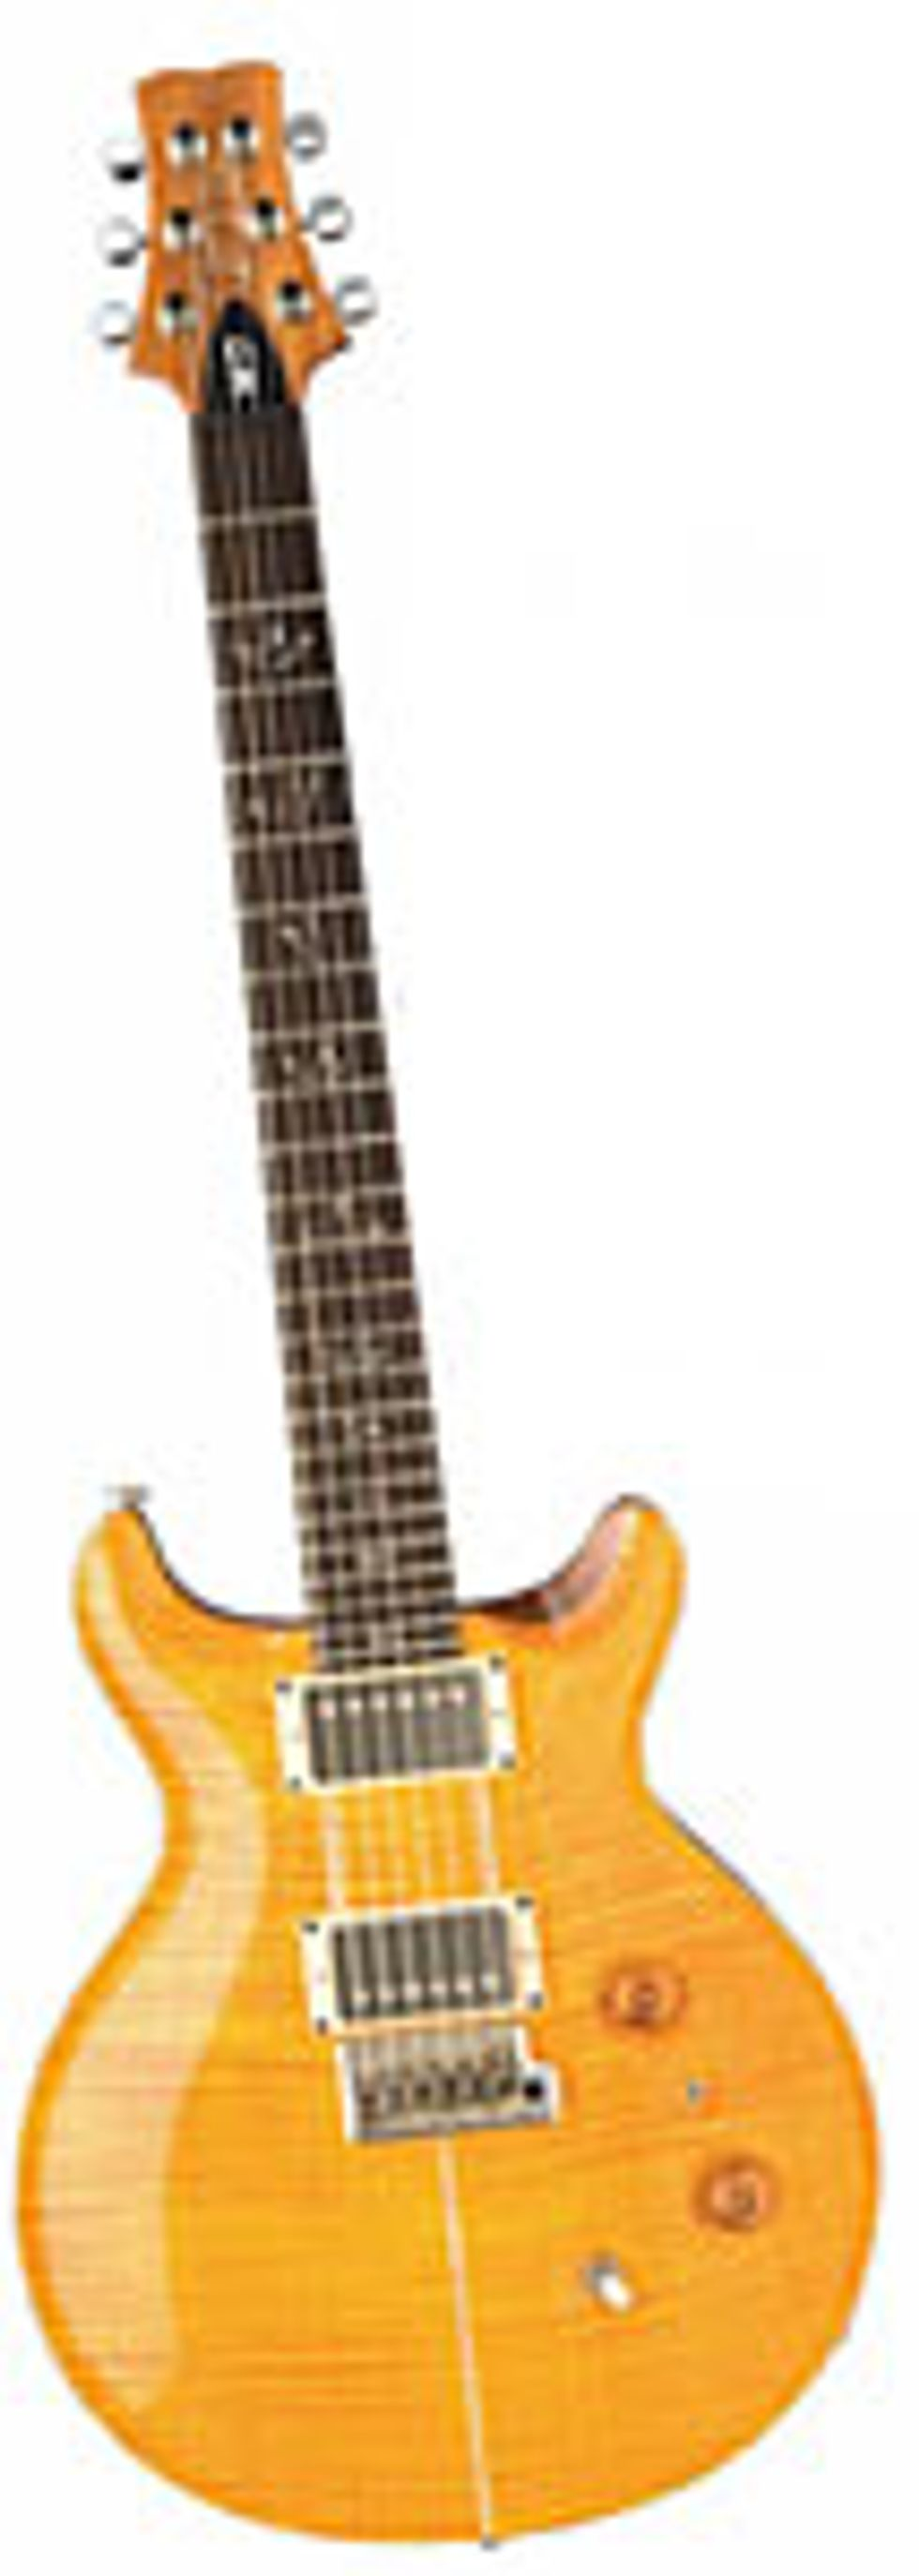 PRS Santana MD Signature Guitar